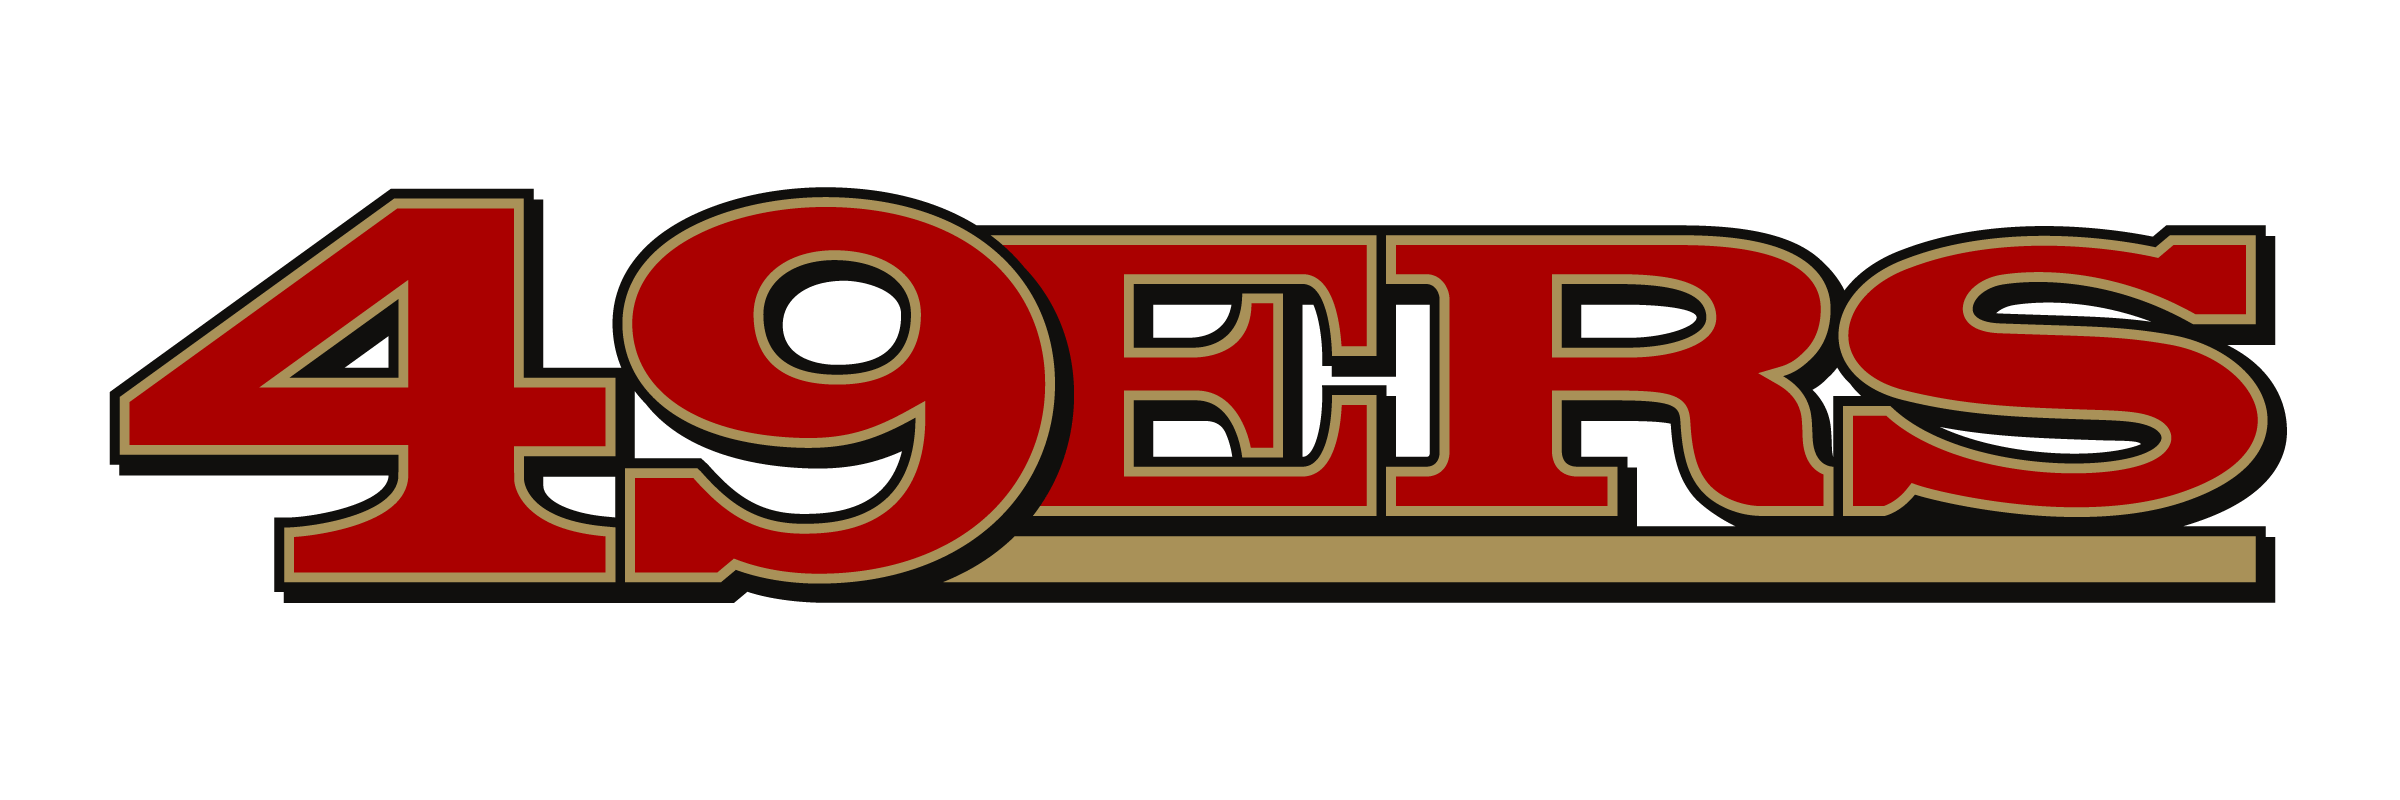 49ers Logo Pics Posted By Zoey Johnson